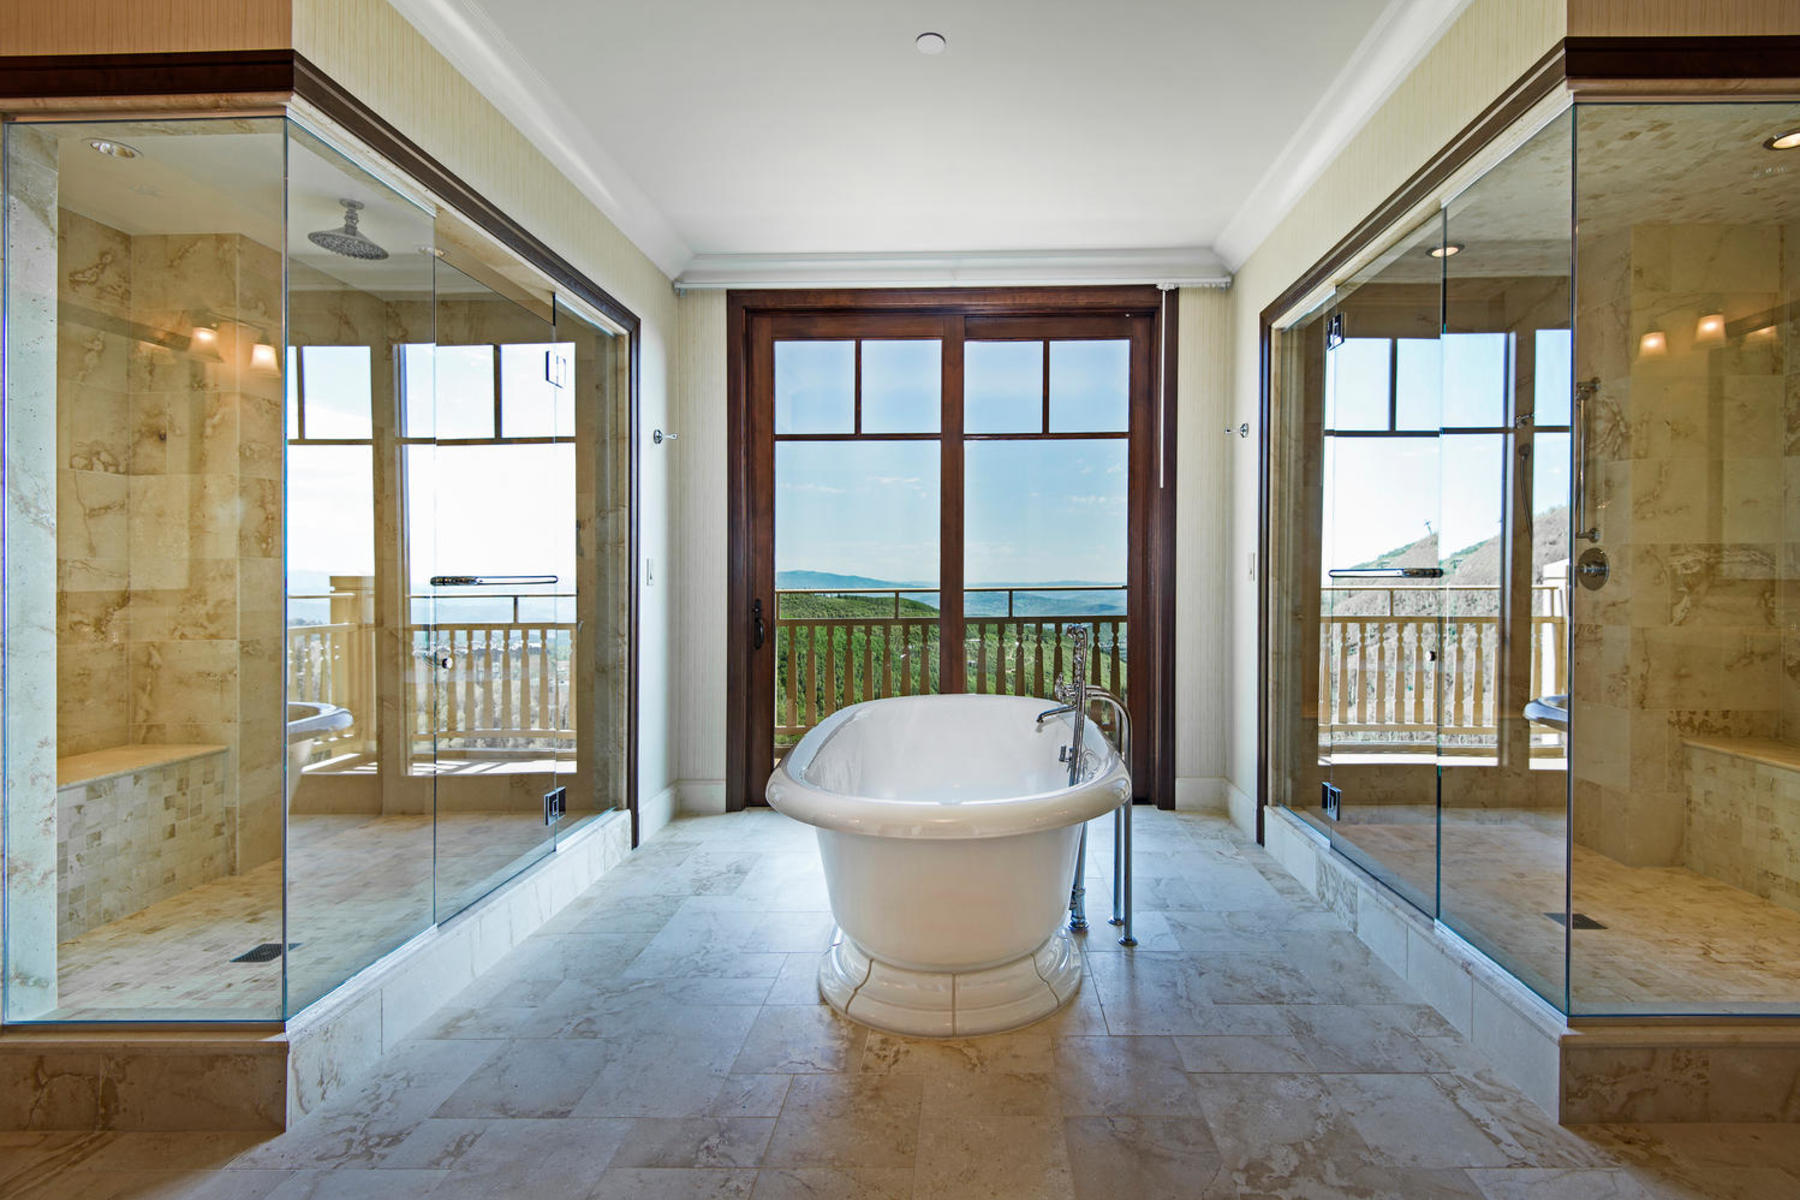 Nhà chung cư vì Bán tại Penthouse With Grand Northern and Southern Views, 4 Bedroom Montage Residences 9100 Marsac Ave #1252 Park City, Utah, 84060 Hoa Kỳ